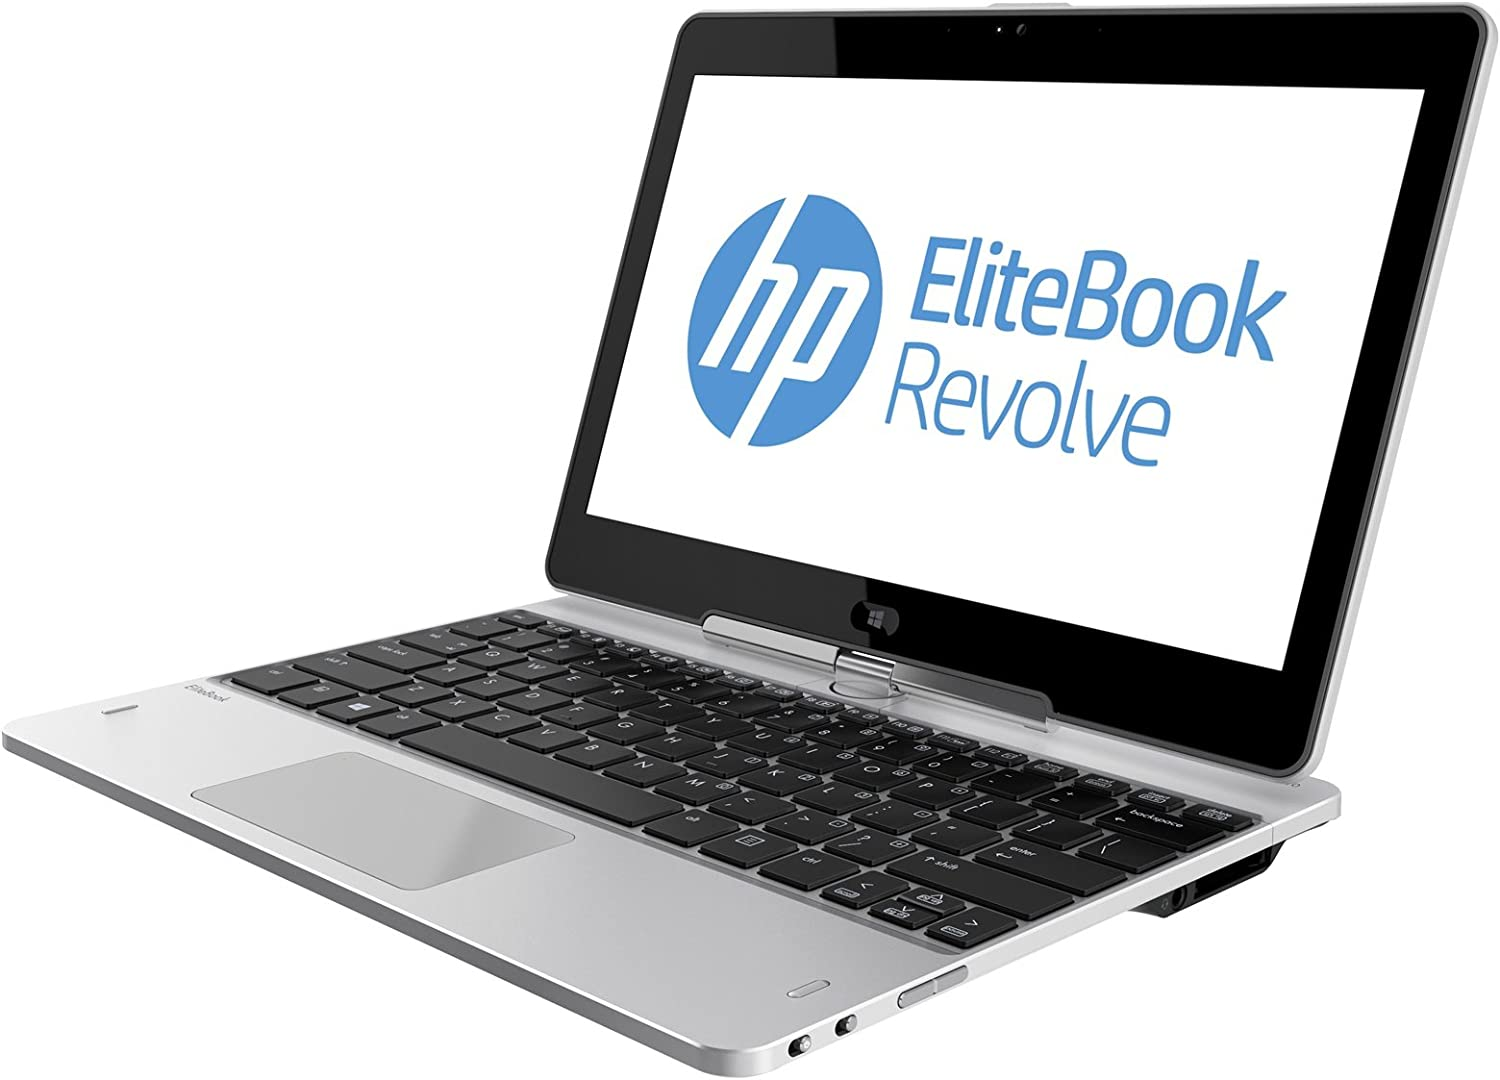 Offerta HP  REVOLVE su TrovaUsati.it